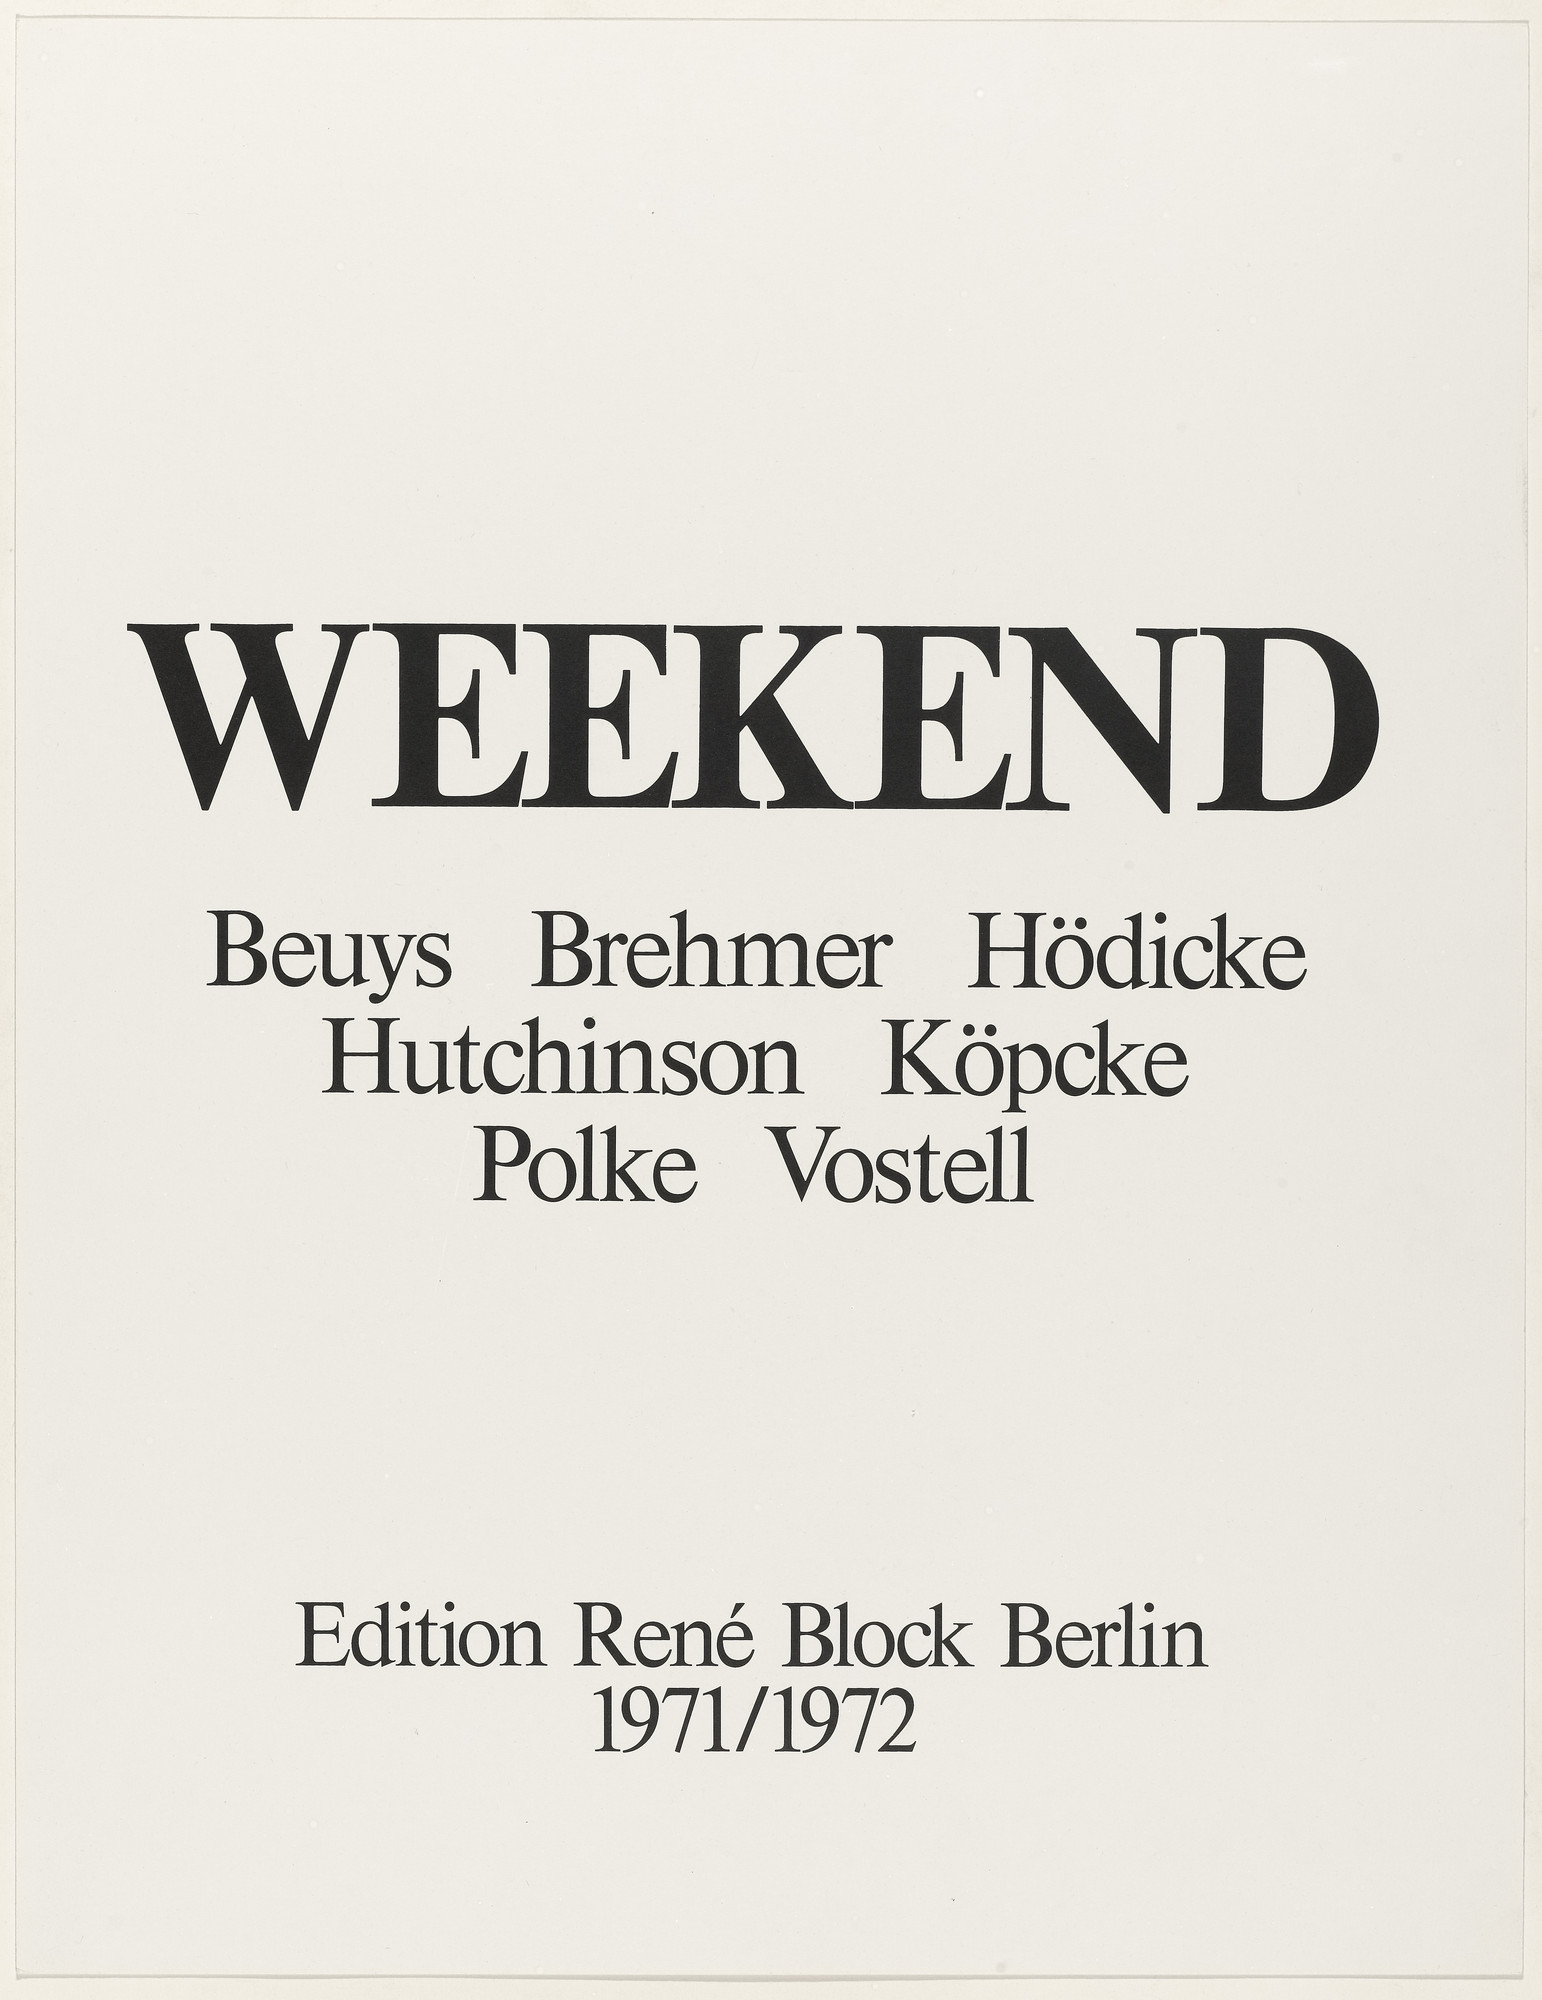 Various Artists, Joseph Beuys, K. P. Brehmer, K. H. Hödicke, Peter Hutchinson, Arthur Köpcke, Sigmar Polke, Wolf Vostell. Weekend. 1970–72, published 1972